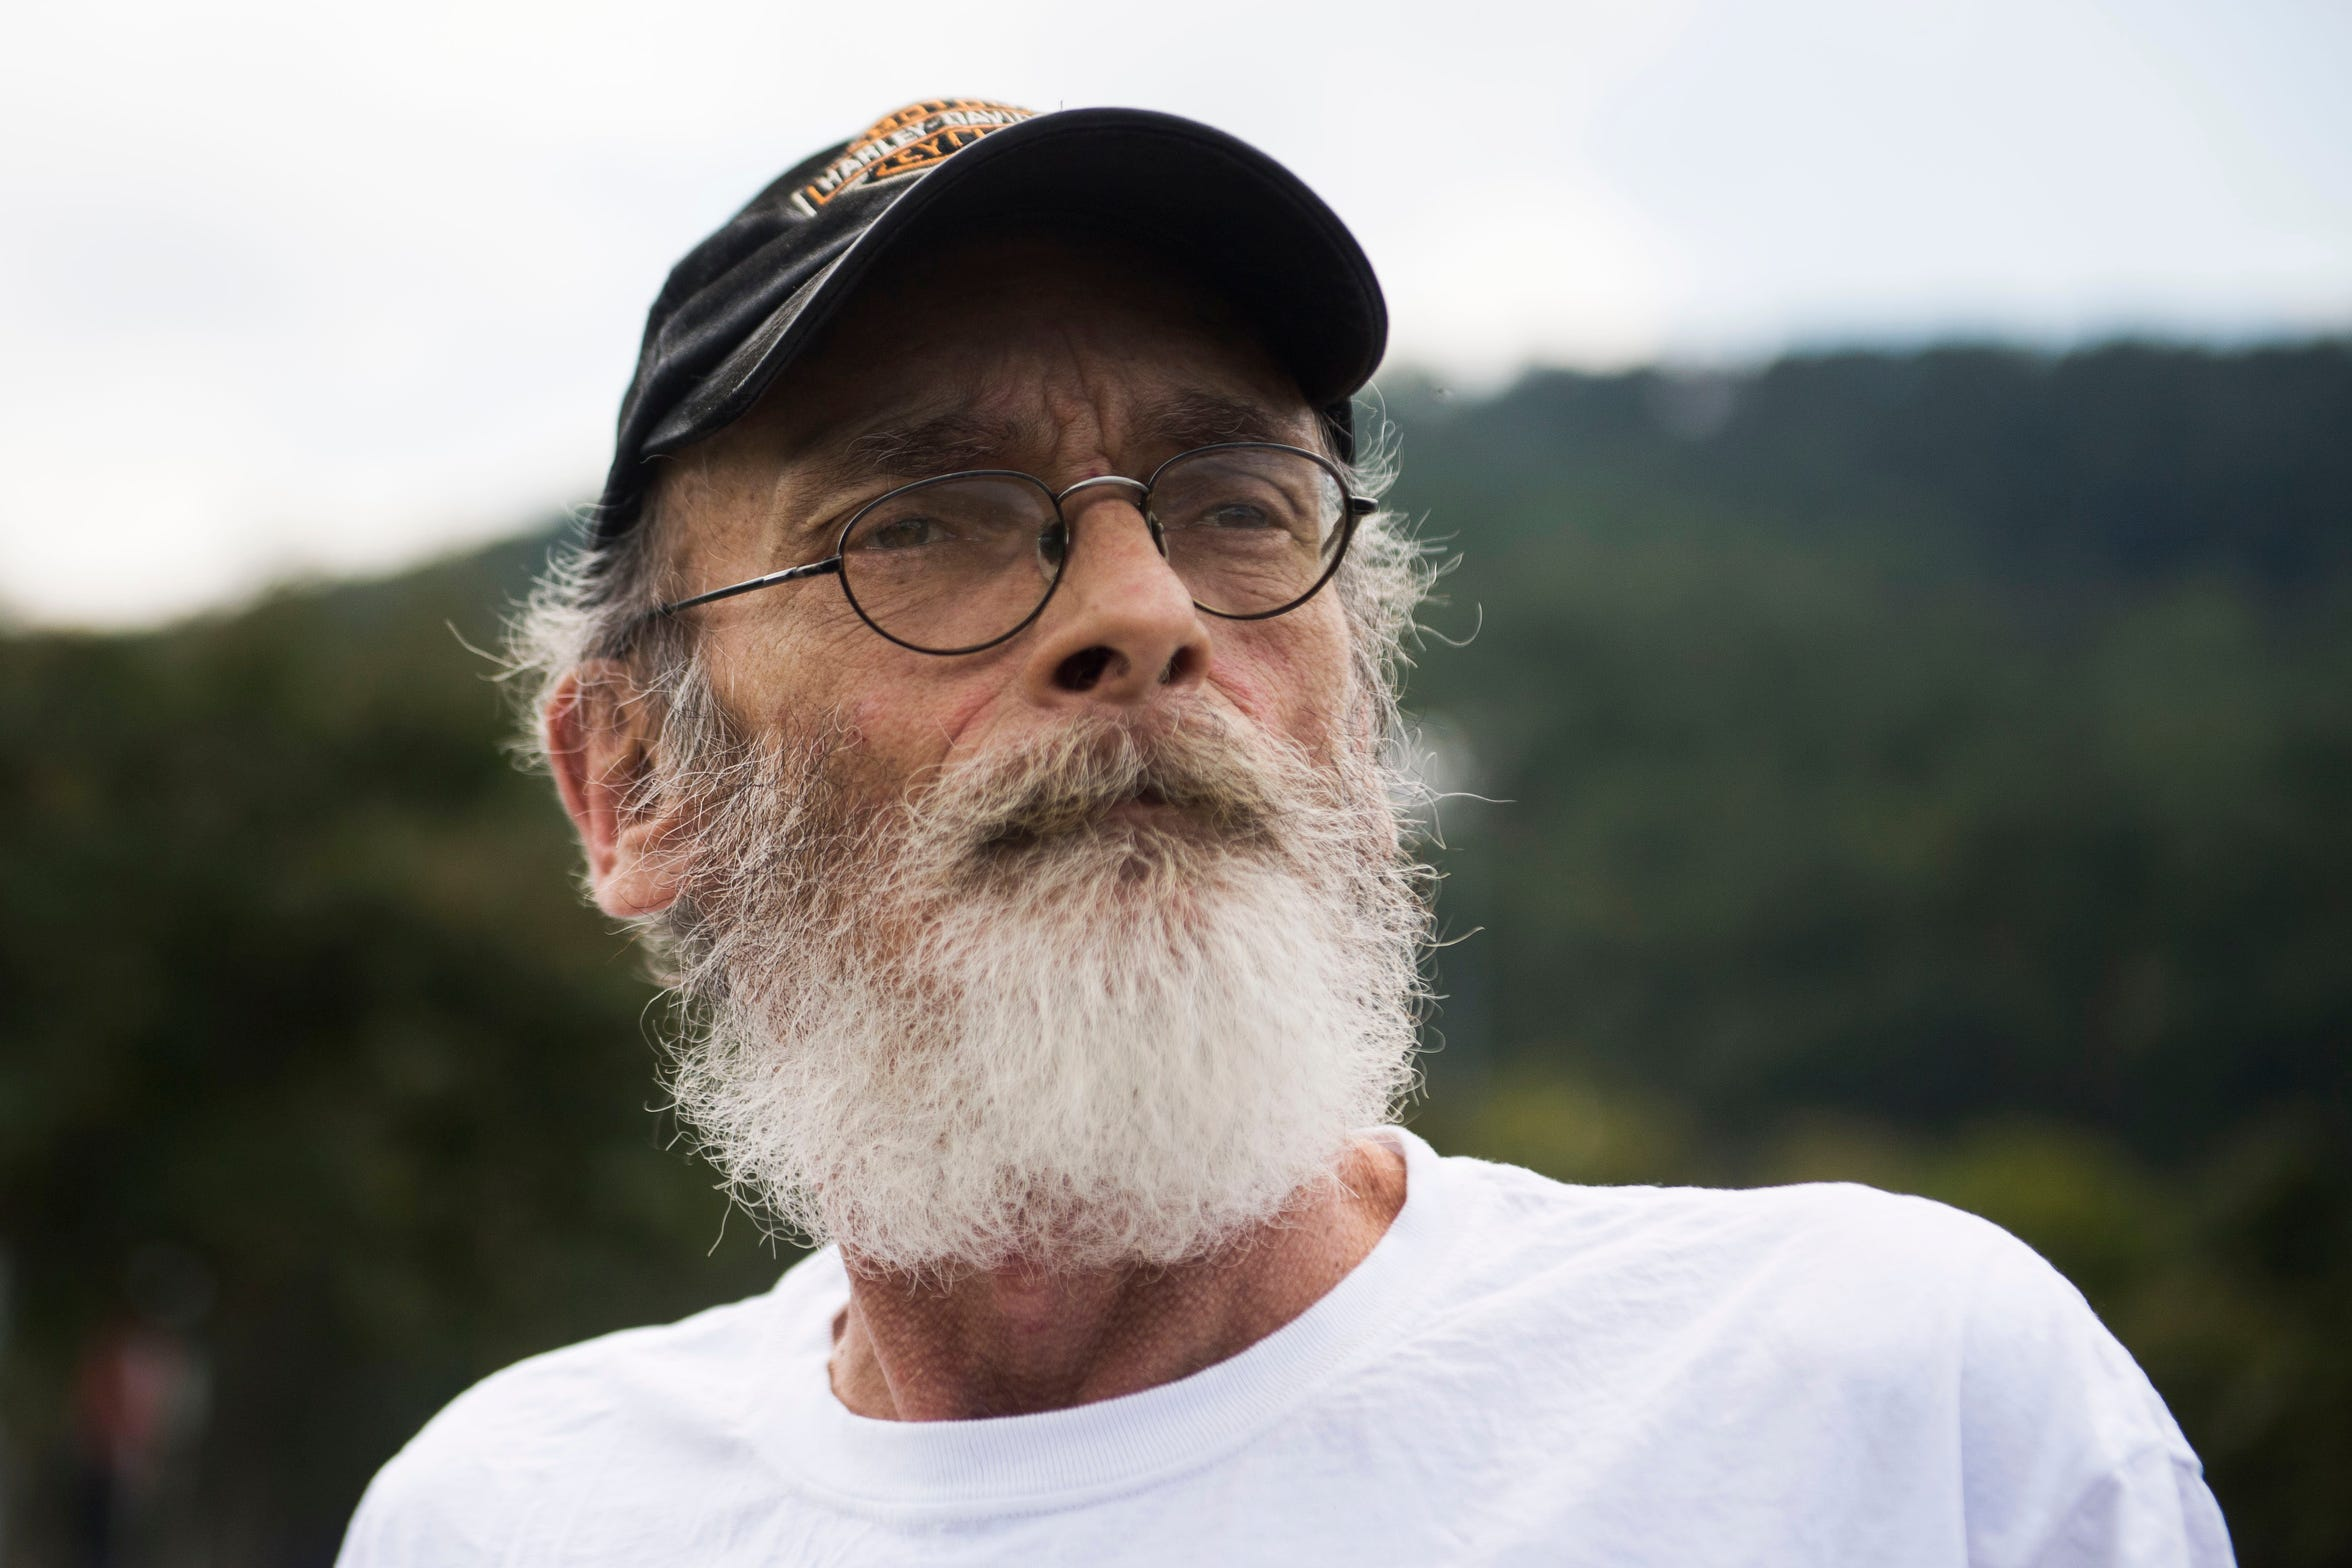 Alan Chrisman was diagnosed with stage 4 colorectal cancer over a year ago. He applied for disability but was denied based on a recommendation by a medical contractor hired by the state to review claims. He then found a lawyer to file a request for reconsideration. Another physicianexamined his file and recommended he be granted disability.